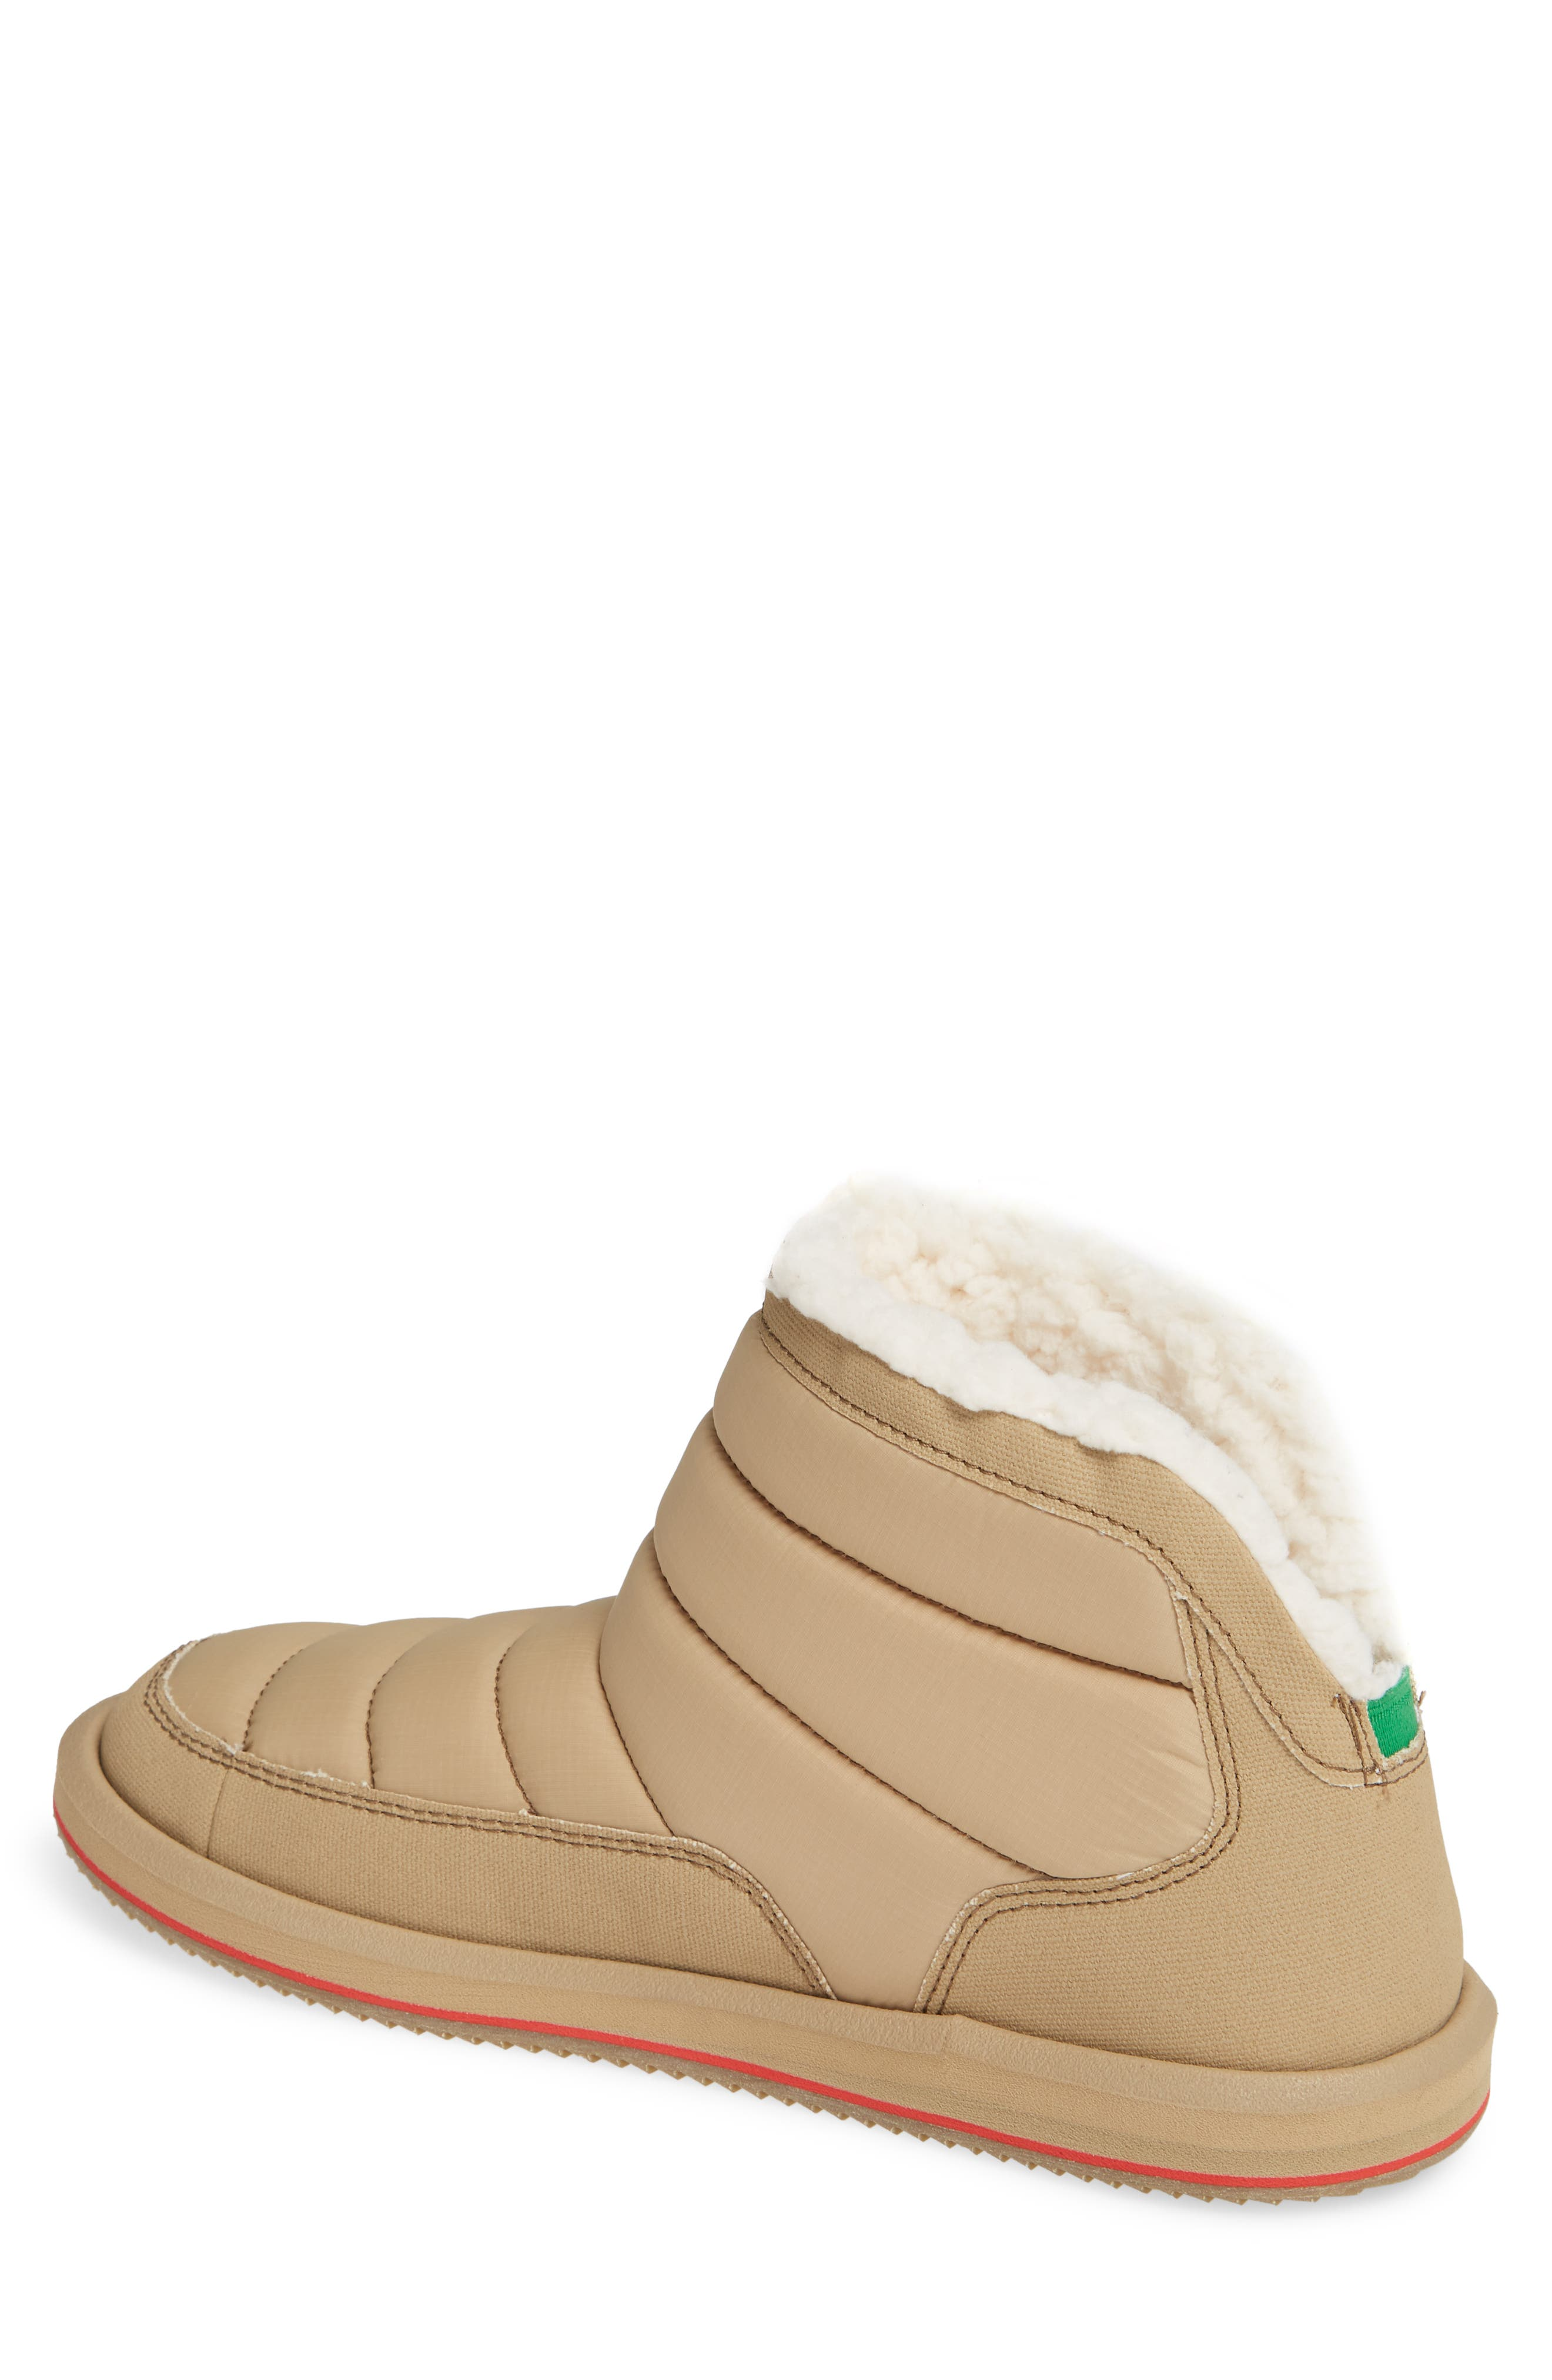 Puff & Chill Weather Boot,                             Alternate thumbnail 2, color,                             TAN